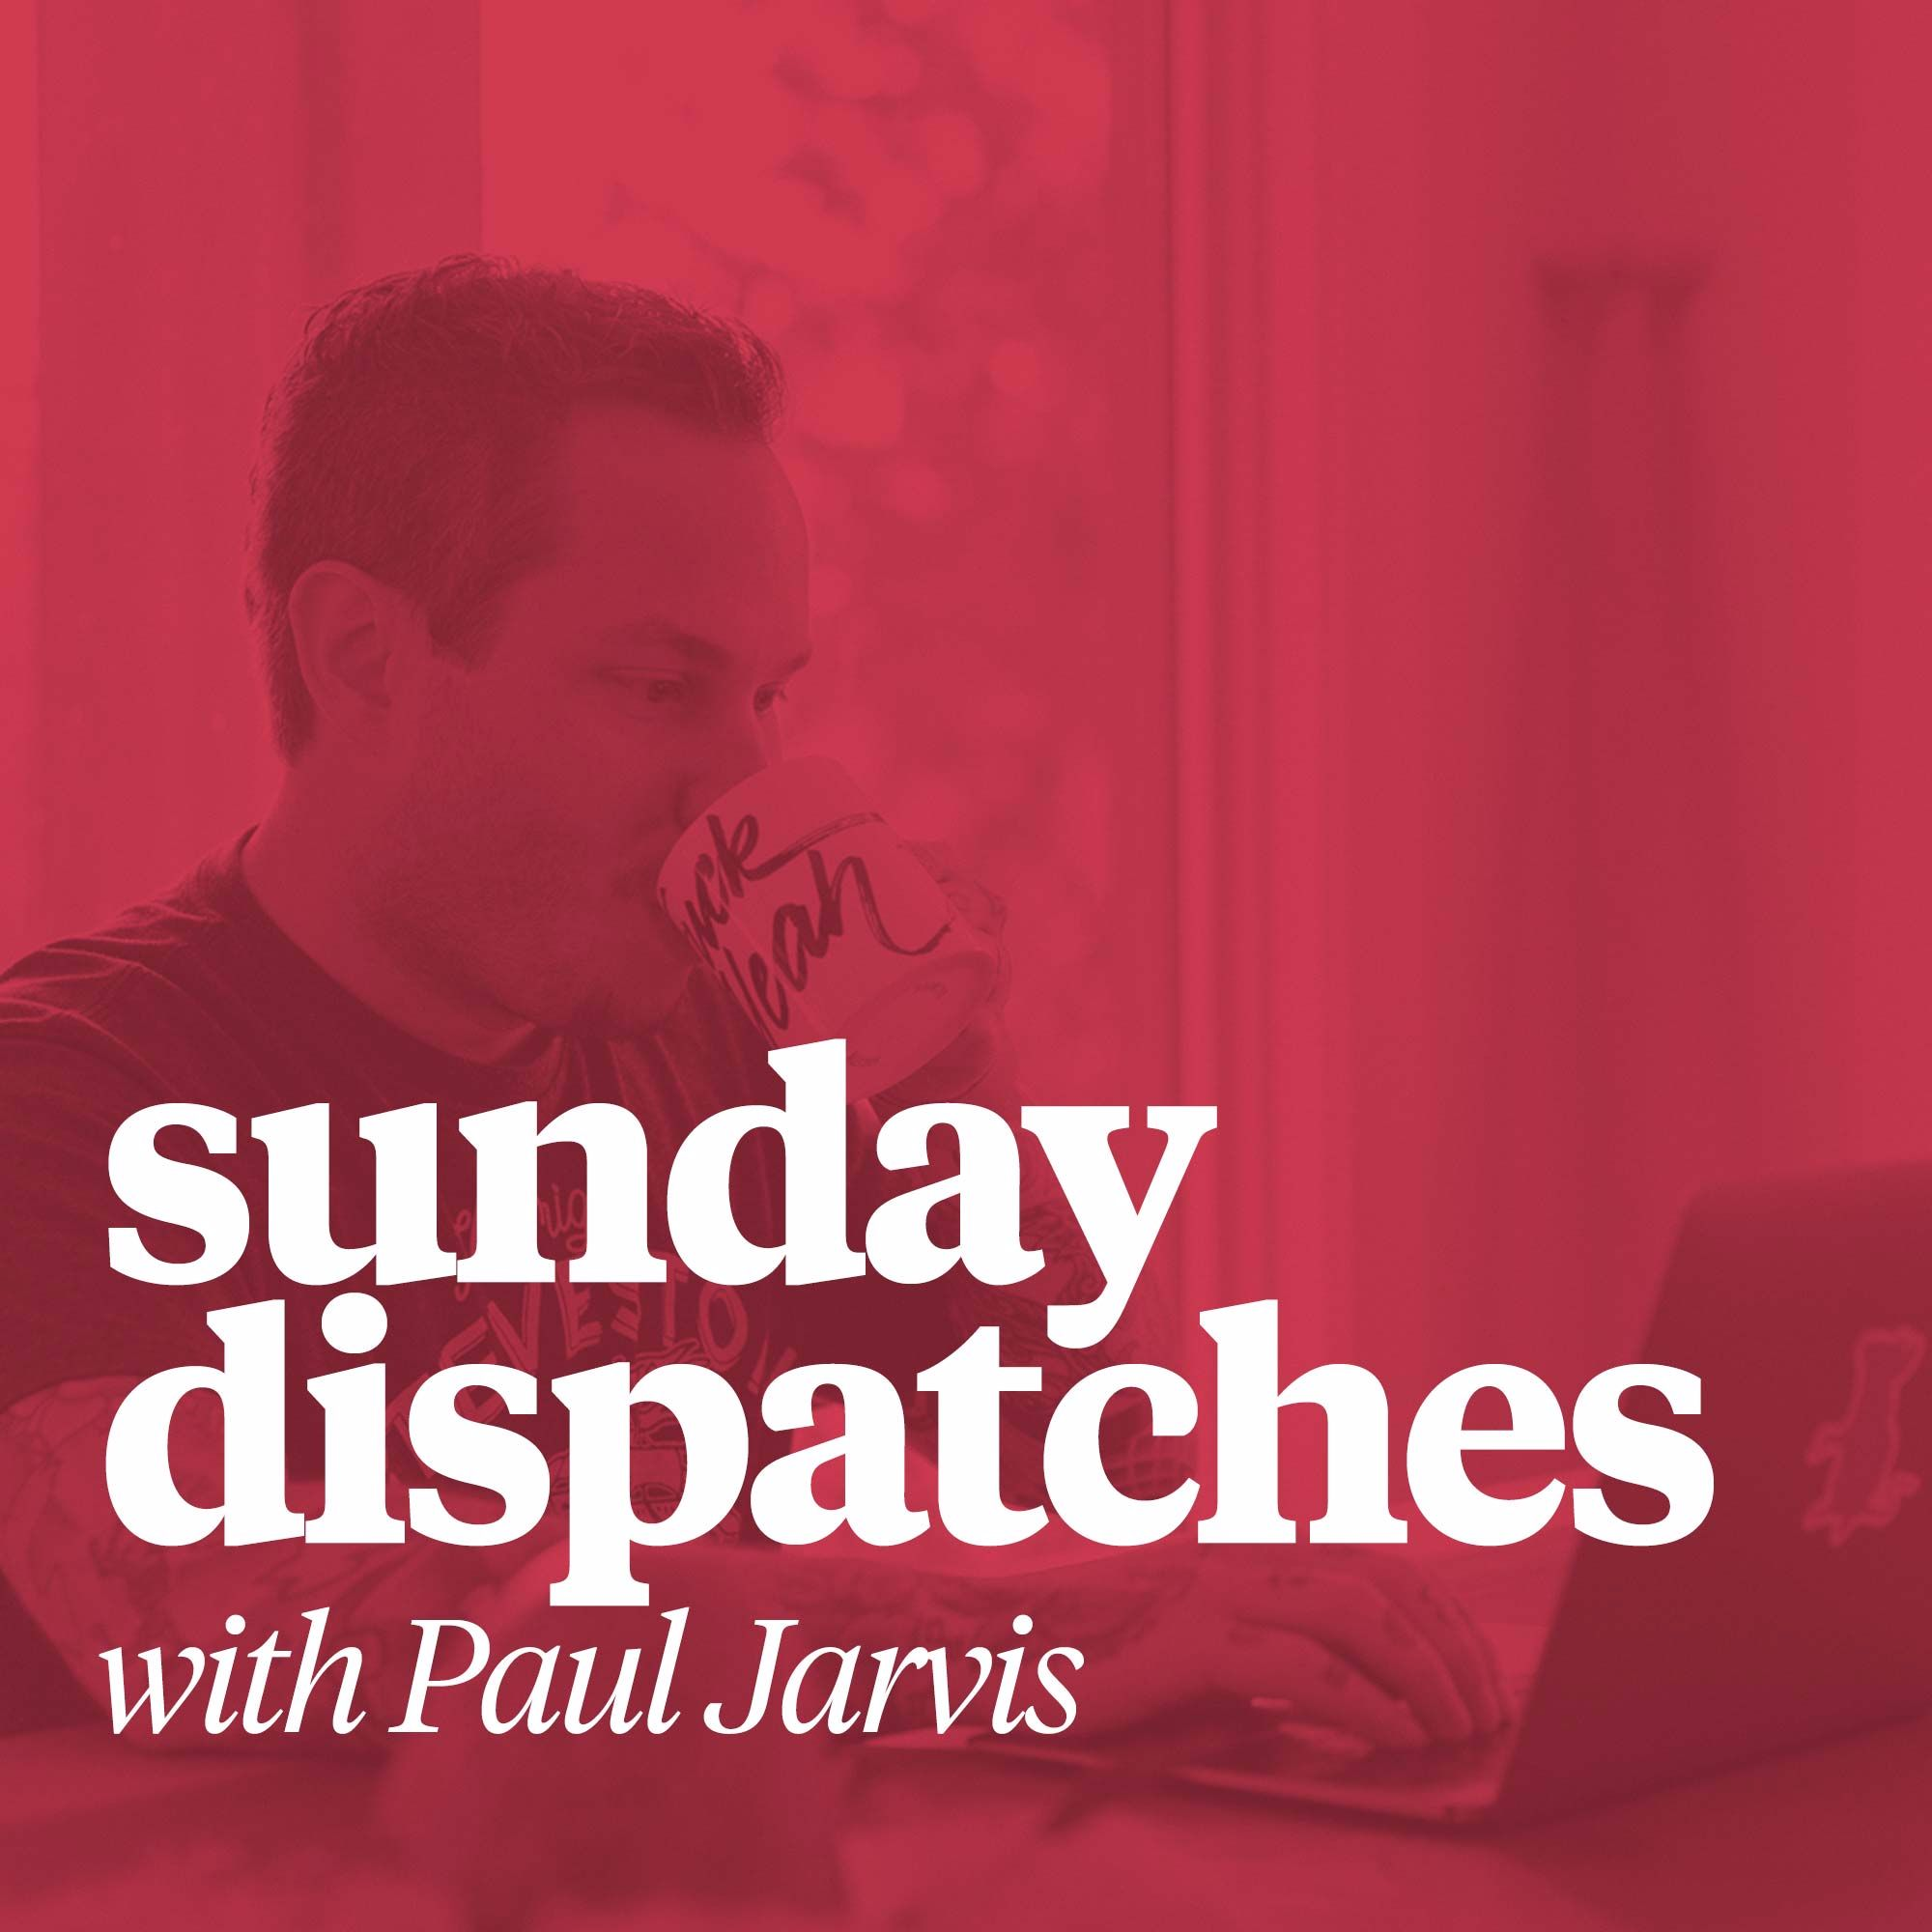 Sunday Dispatches with Paul Jarvis